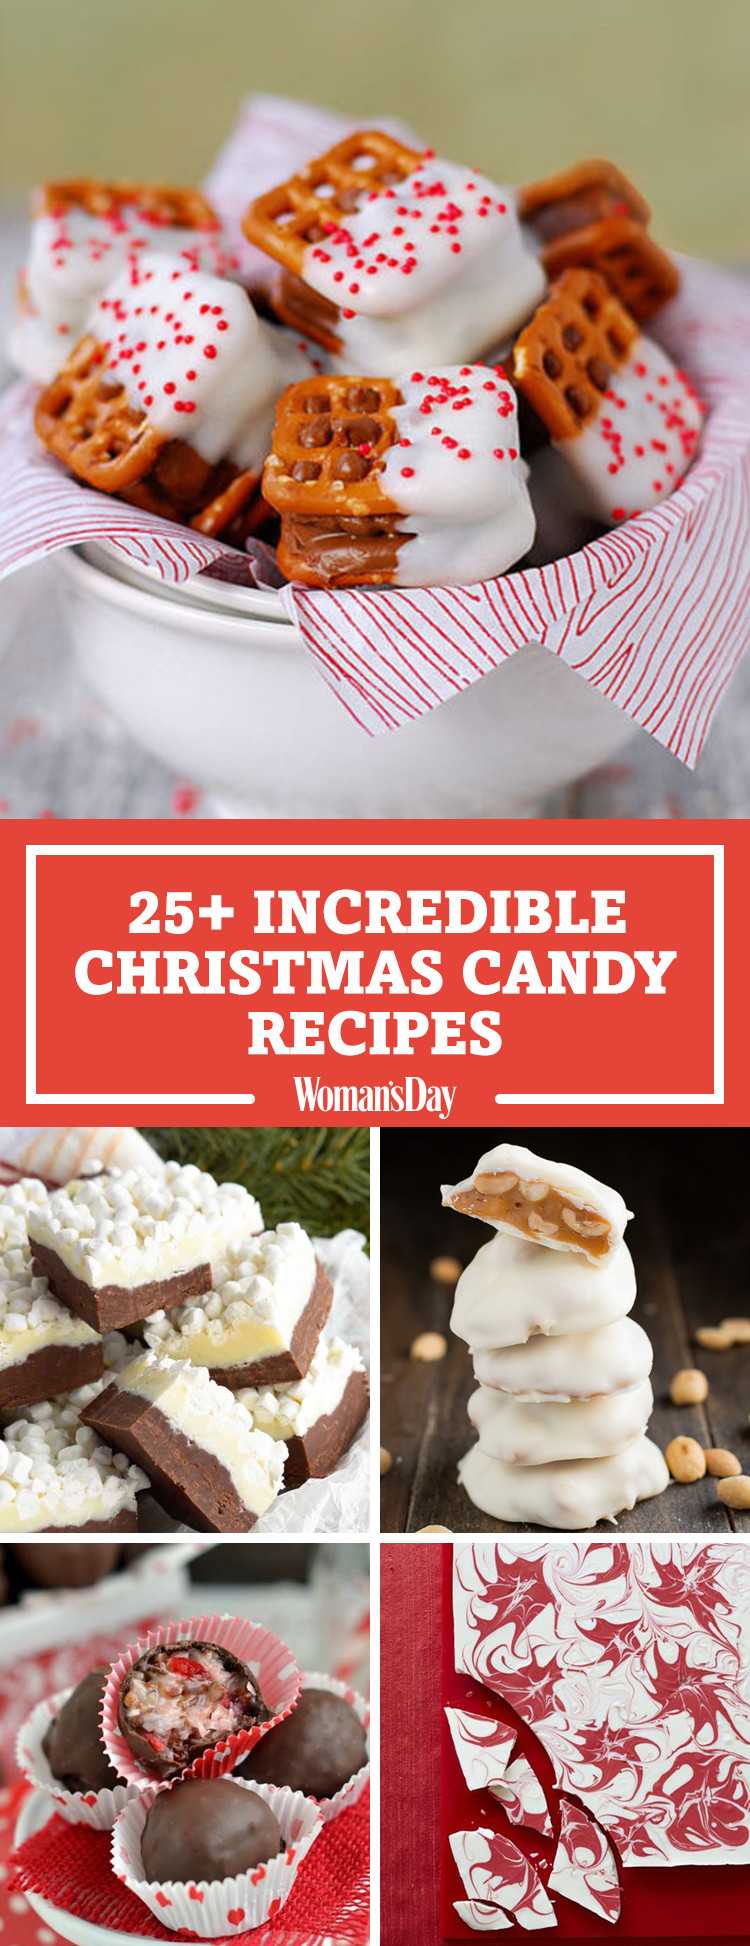 Candy Recipes For Christmas  28 Homemade Christmas Candy Recipes How To Make Your Own